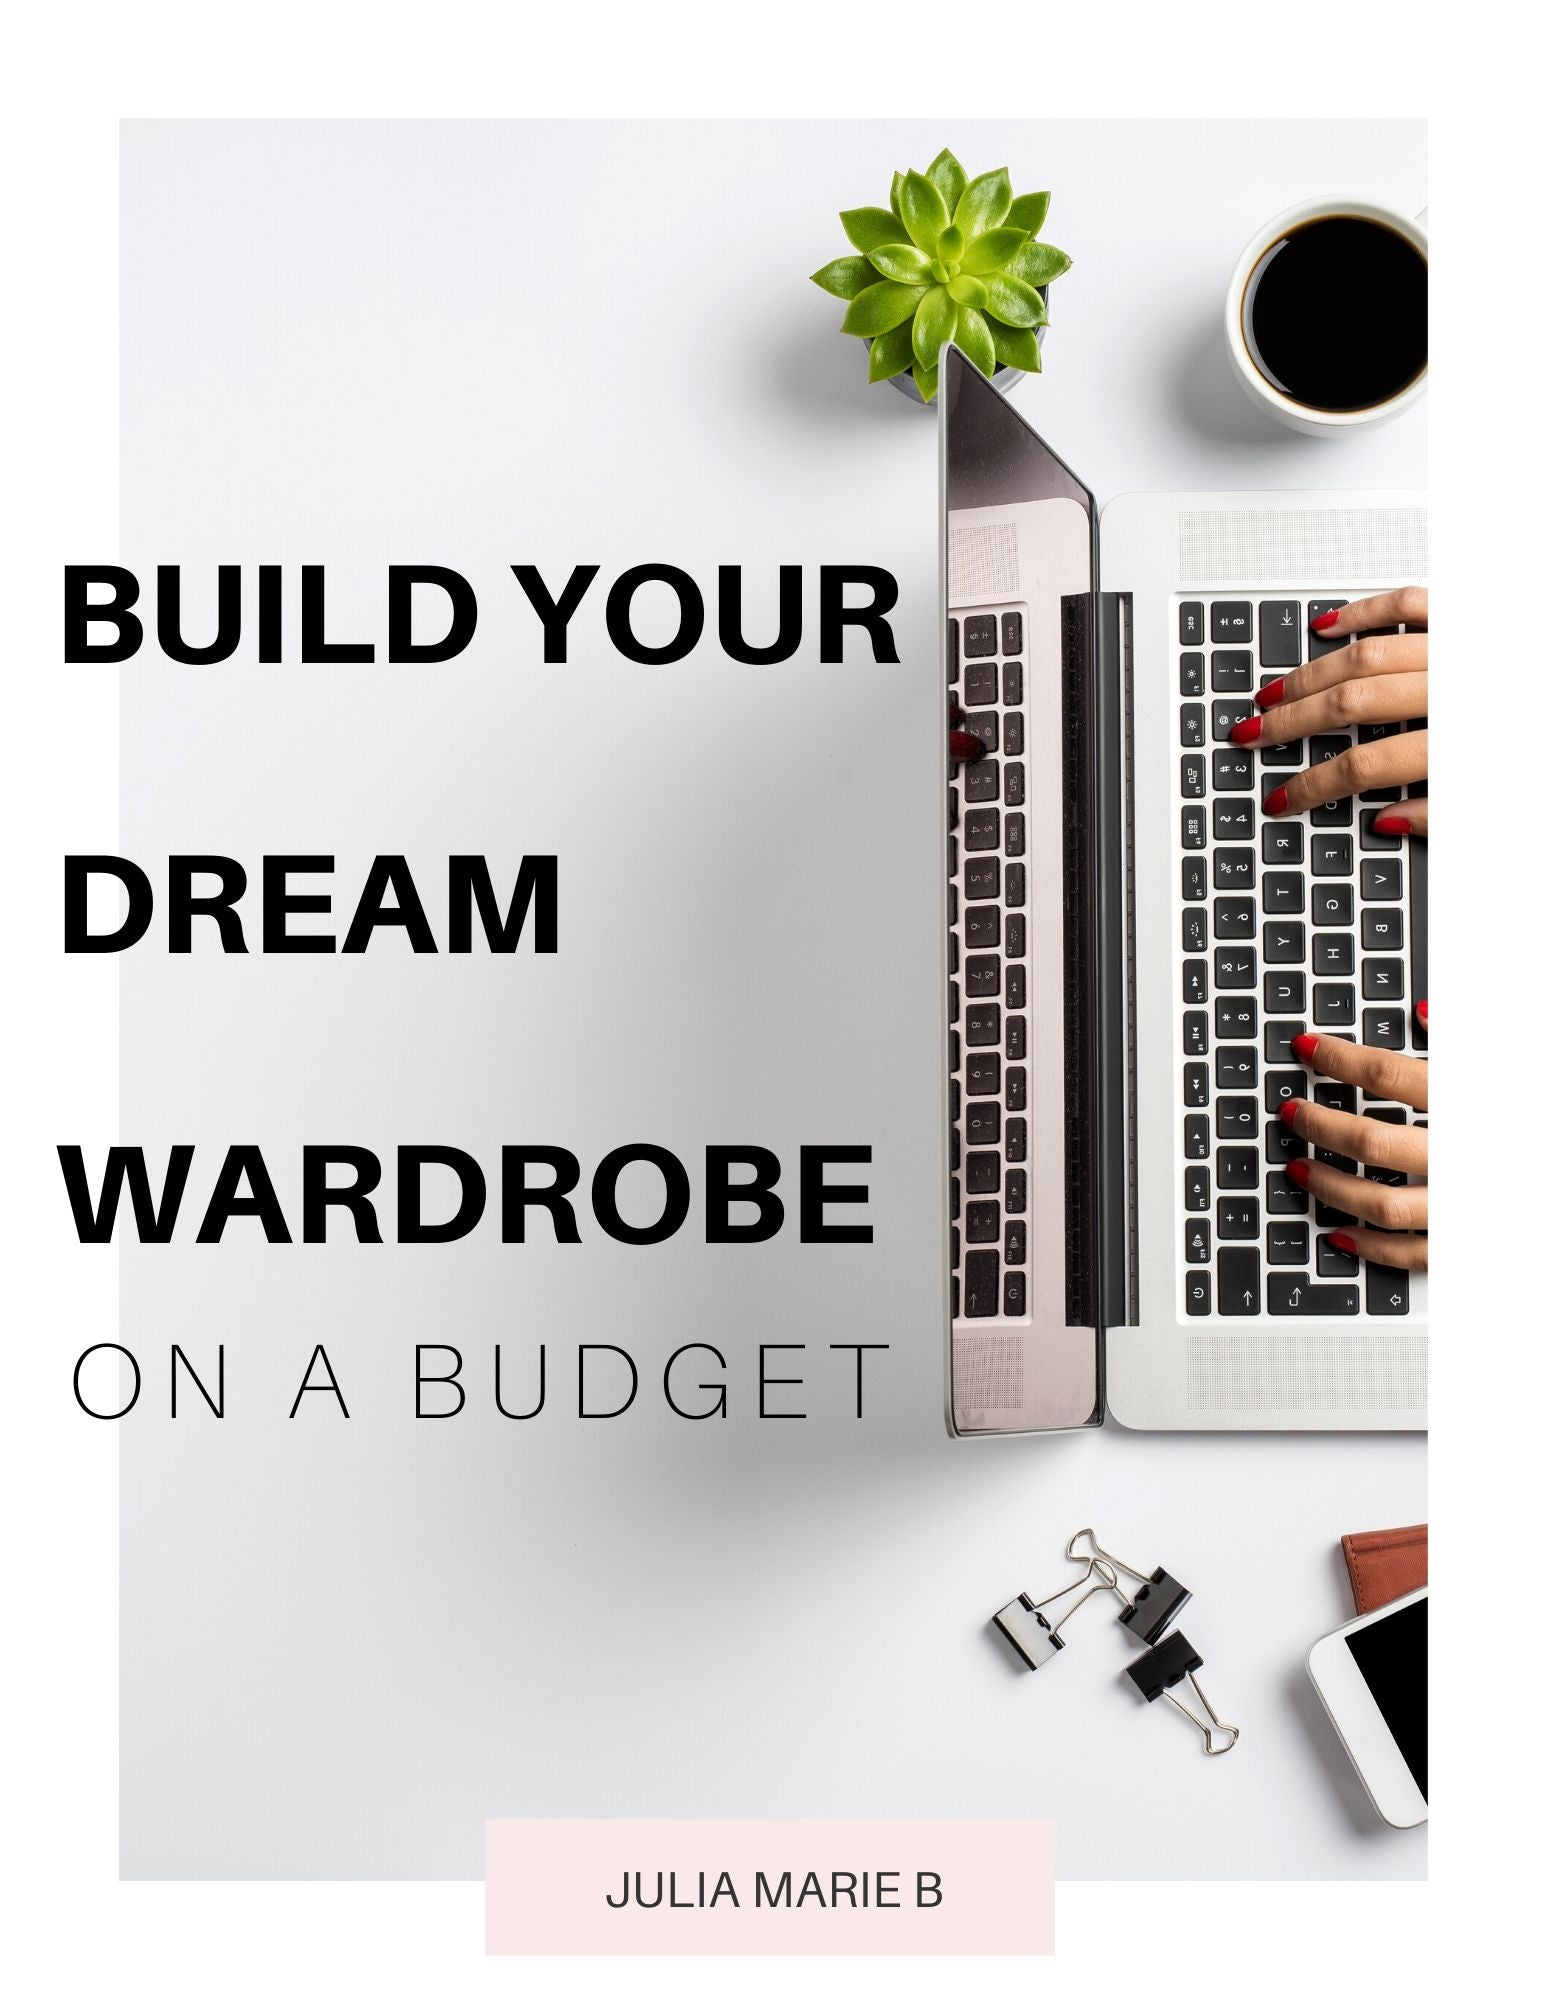 BUILD YOUR DREAM WARDROBE